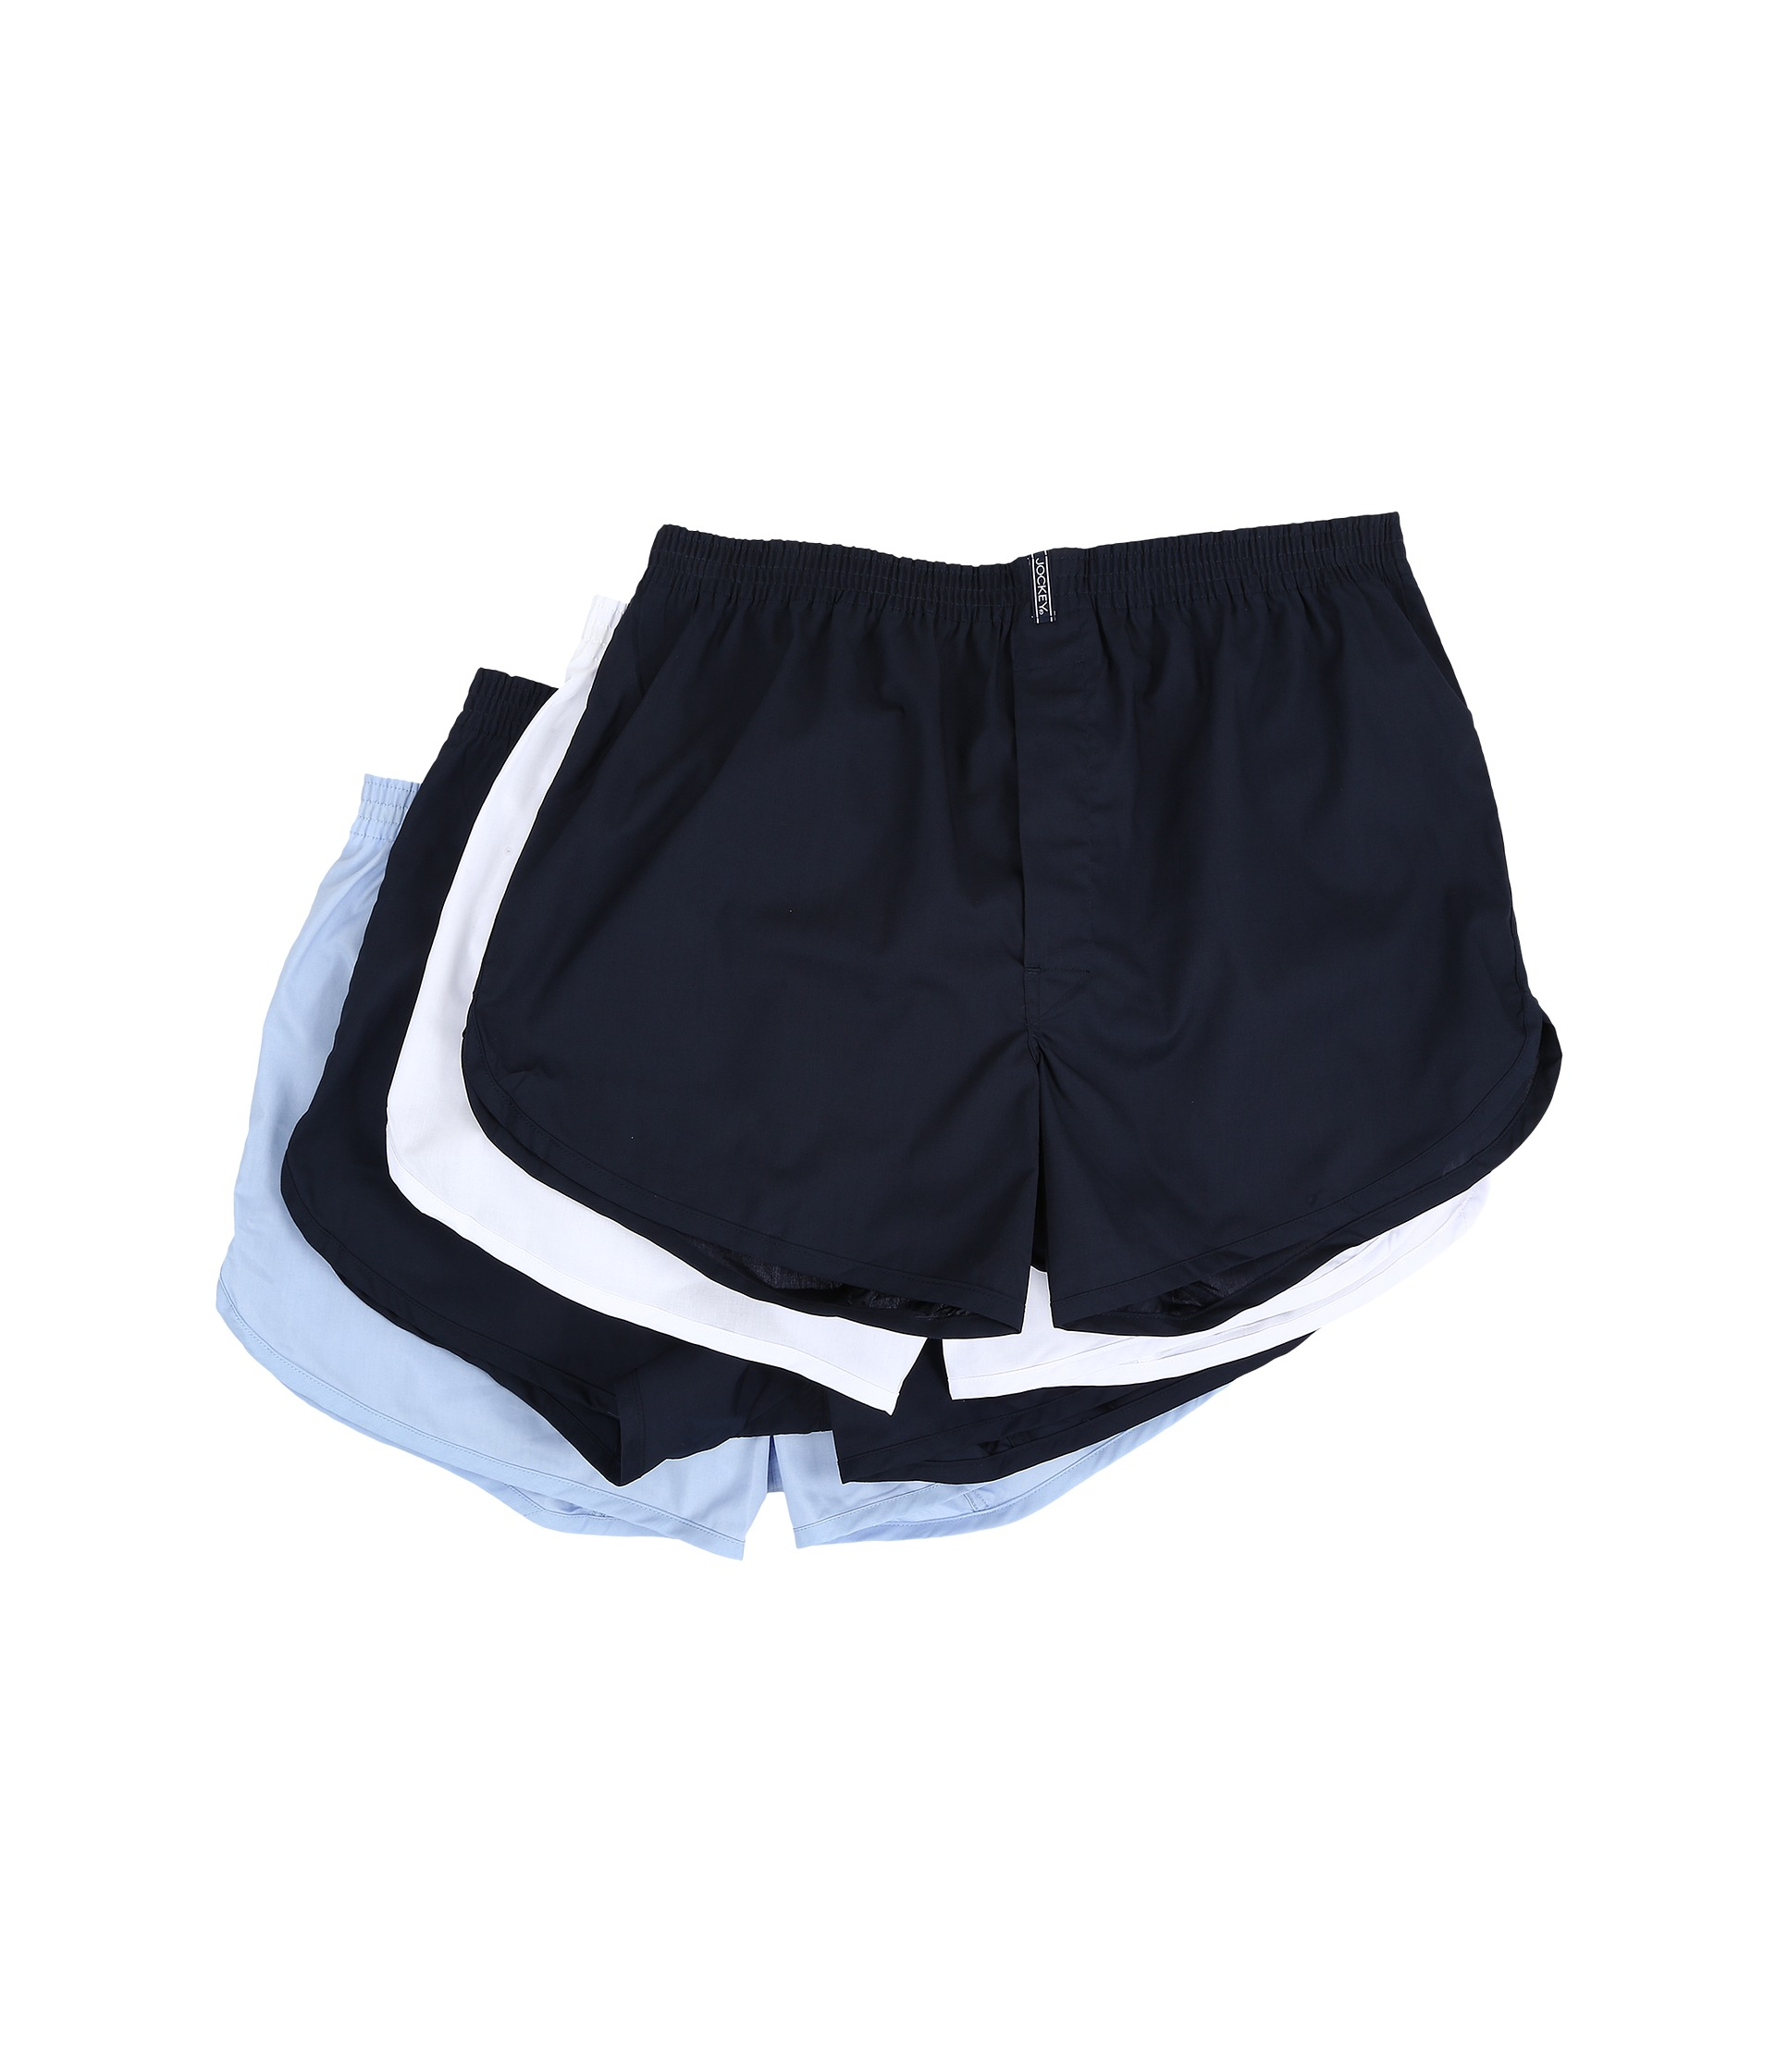 Jockey(R) four pack of lightweight boxers feature StayNew(tm) Technology that reduces fading and keeps fabric looking and feeling new, a comfort waistband, and a tapered design. 55% Cotton, 45% Polyester. Machine wash.